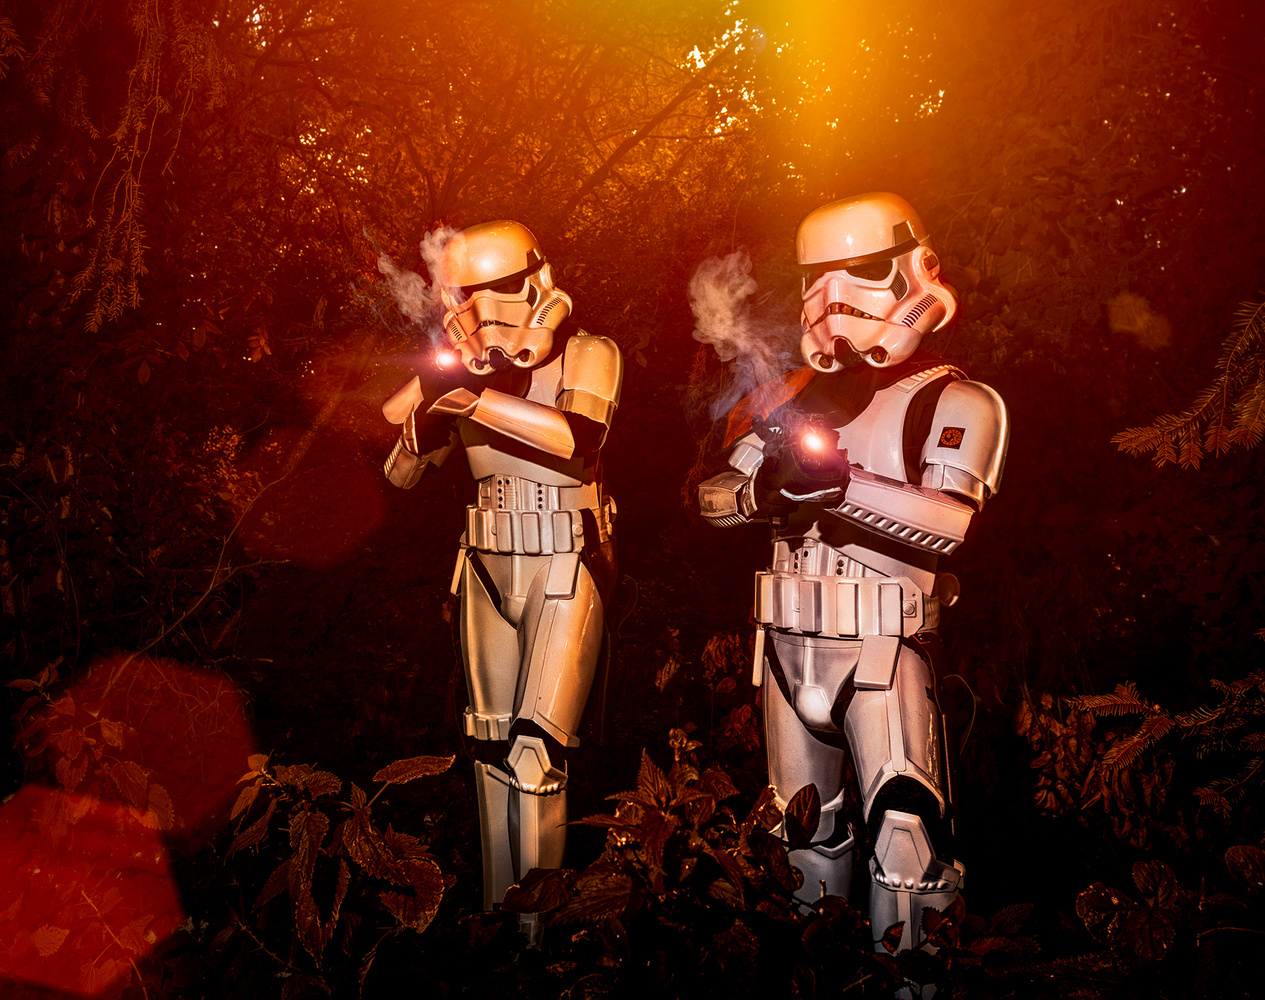 Stormtroopers having a blast by Darcy Brown